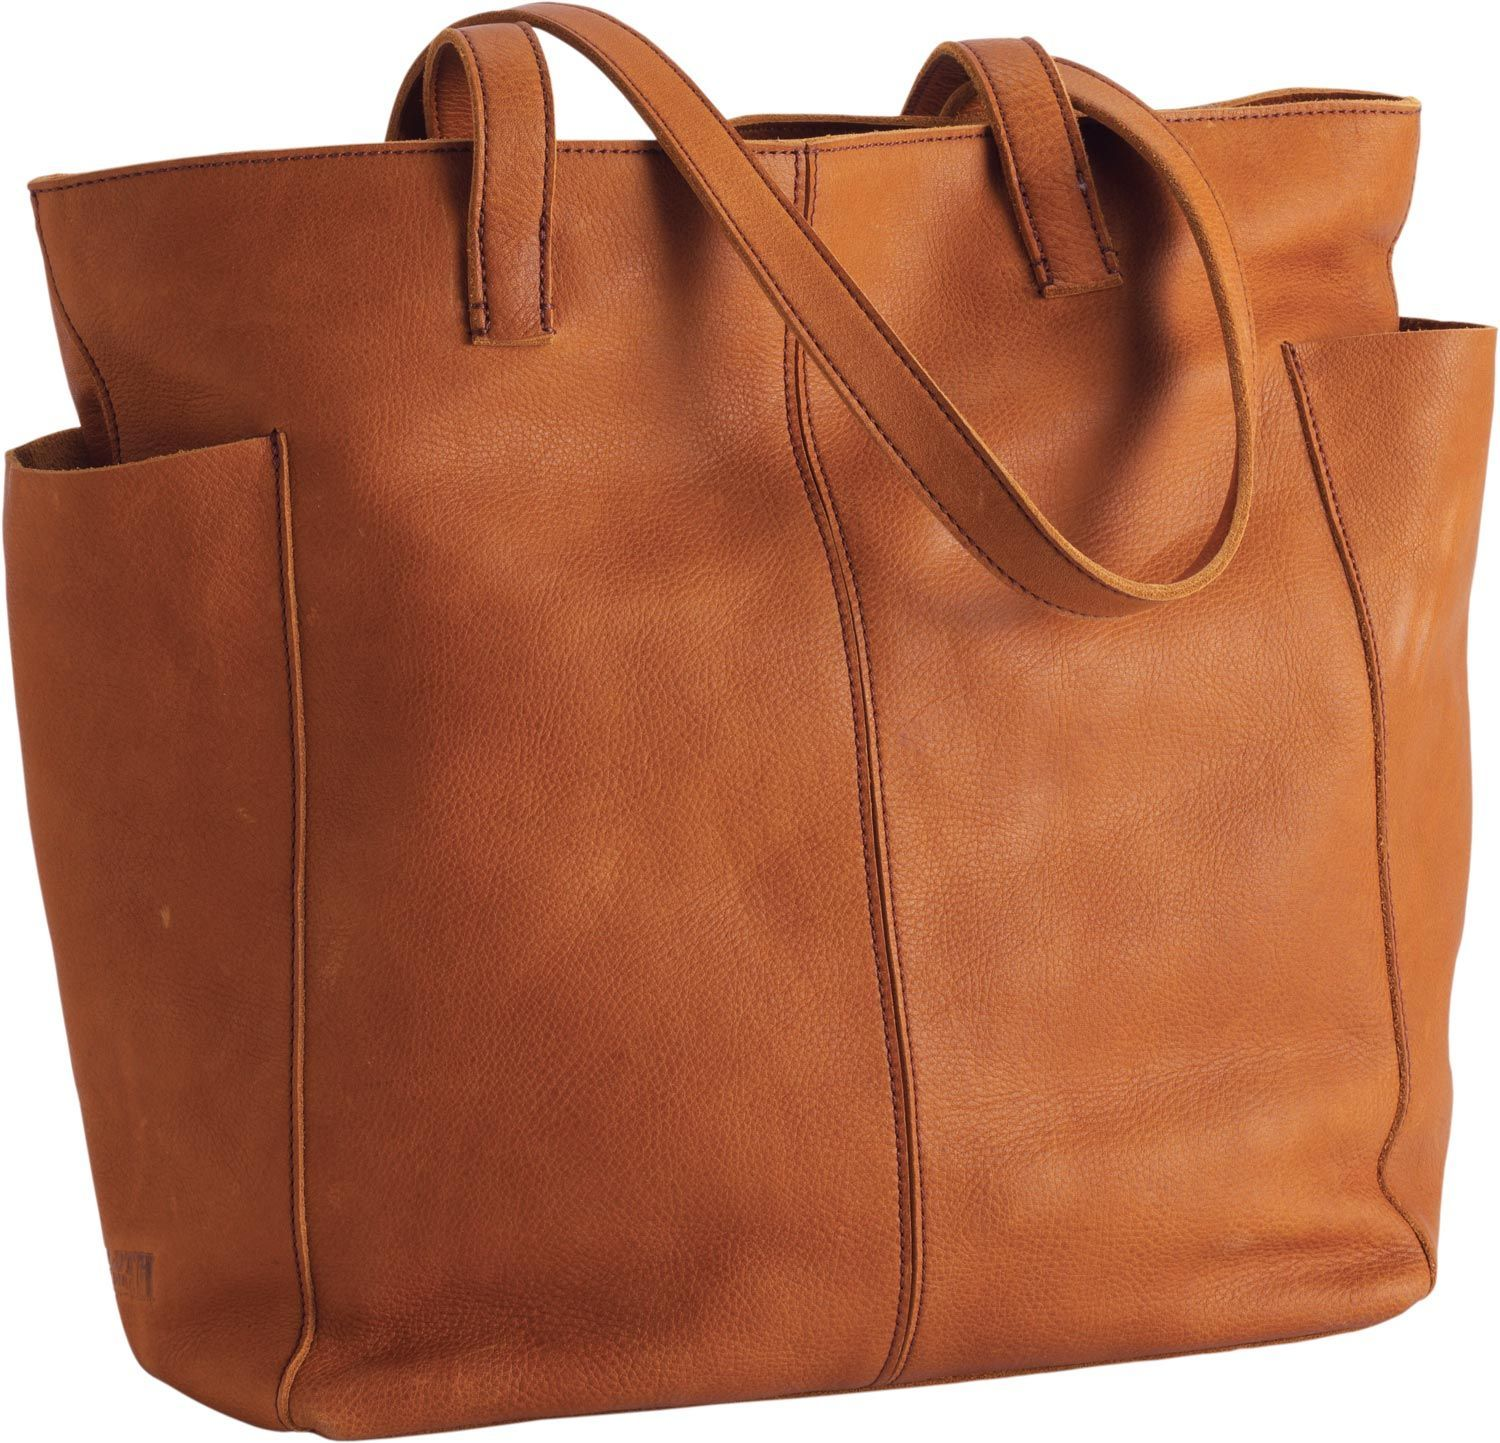 Women S Lifetime Leather Travel Tote Bag From Duluth Trading Company Is Made Of Beautiful Full Grain This Gets Better With Age Softening And